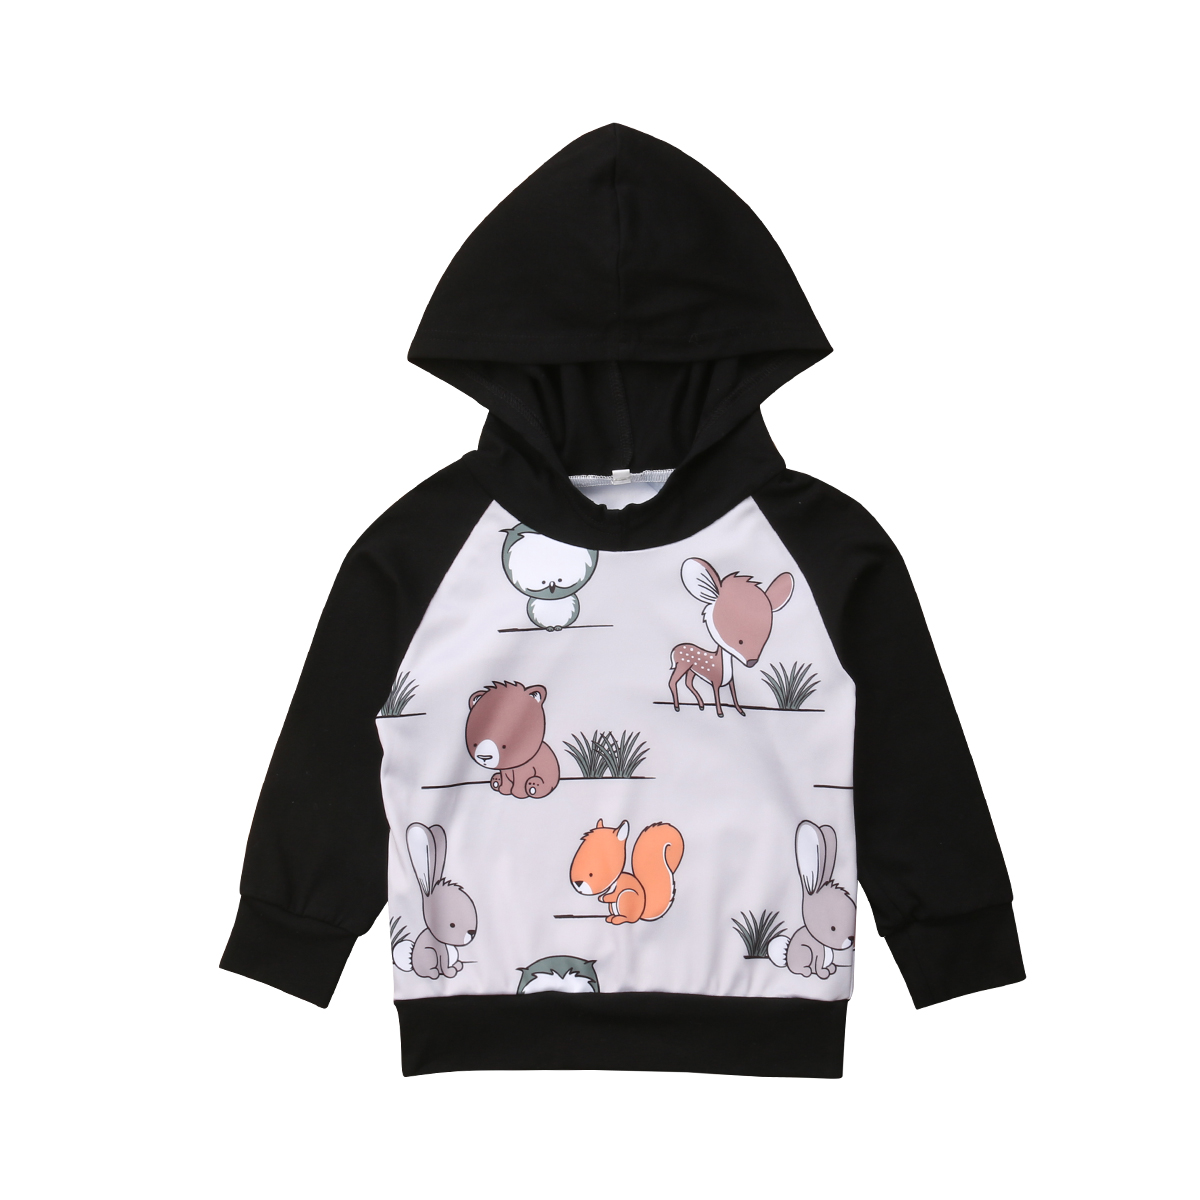 Lovely Newborn Baby Girl Toddler Warm Cotton Hooded SweatshirtsTop Casual Pullover Animal Print Autumn Hoodies Clothes